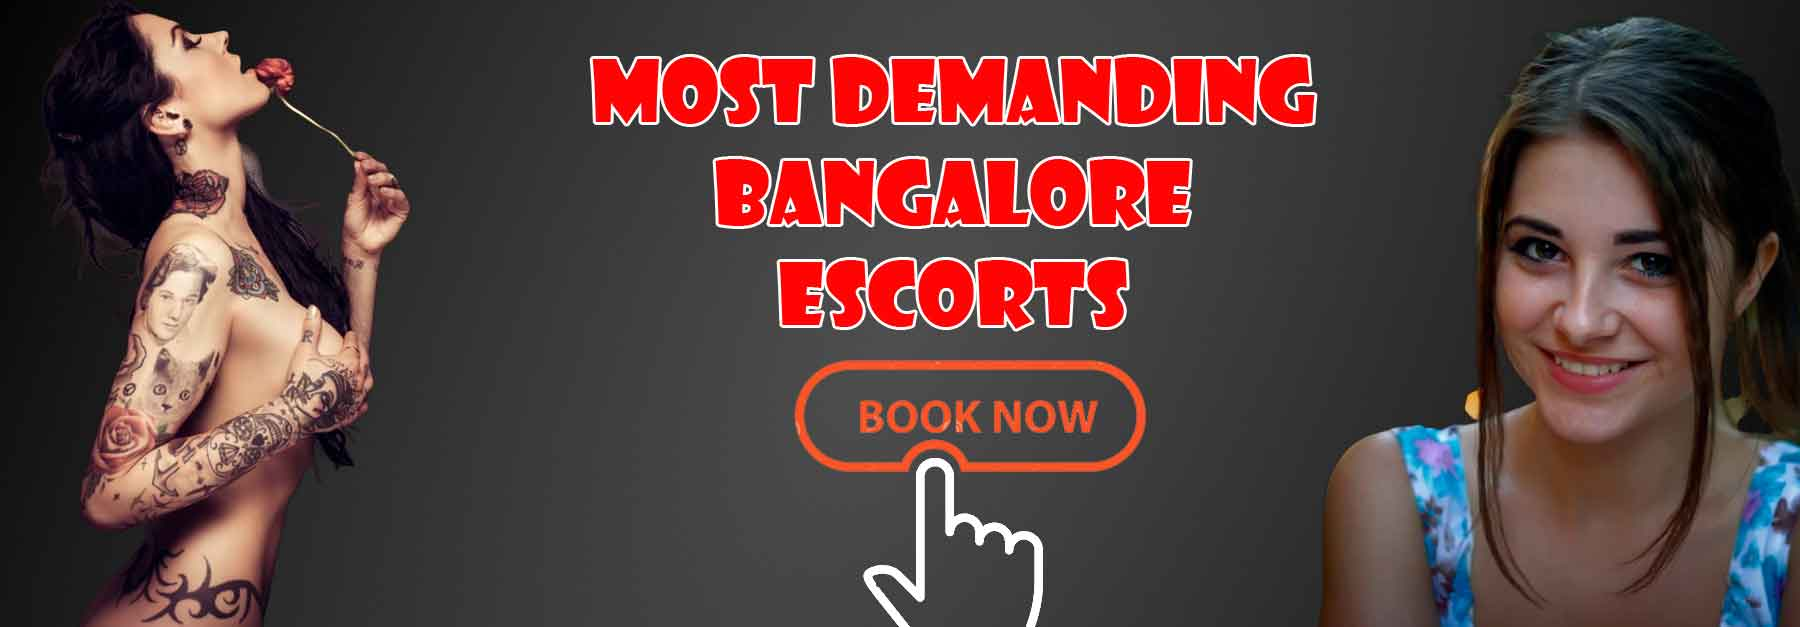 VIP Female escorts service 24x7